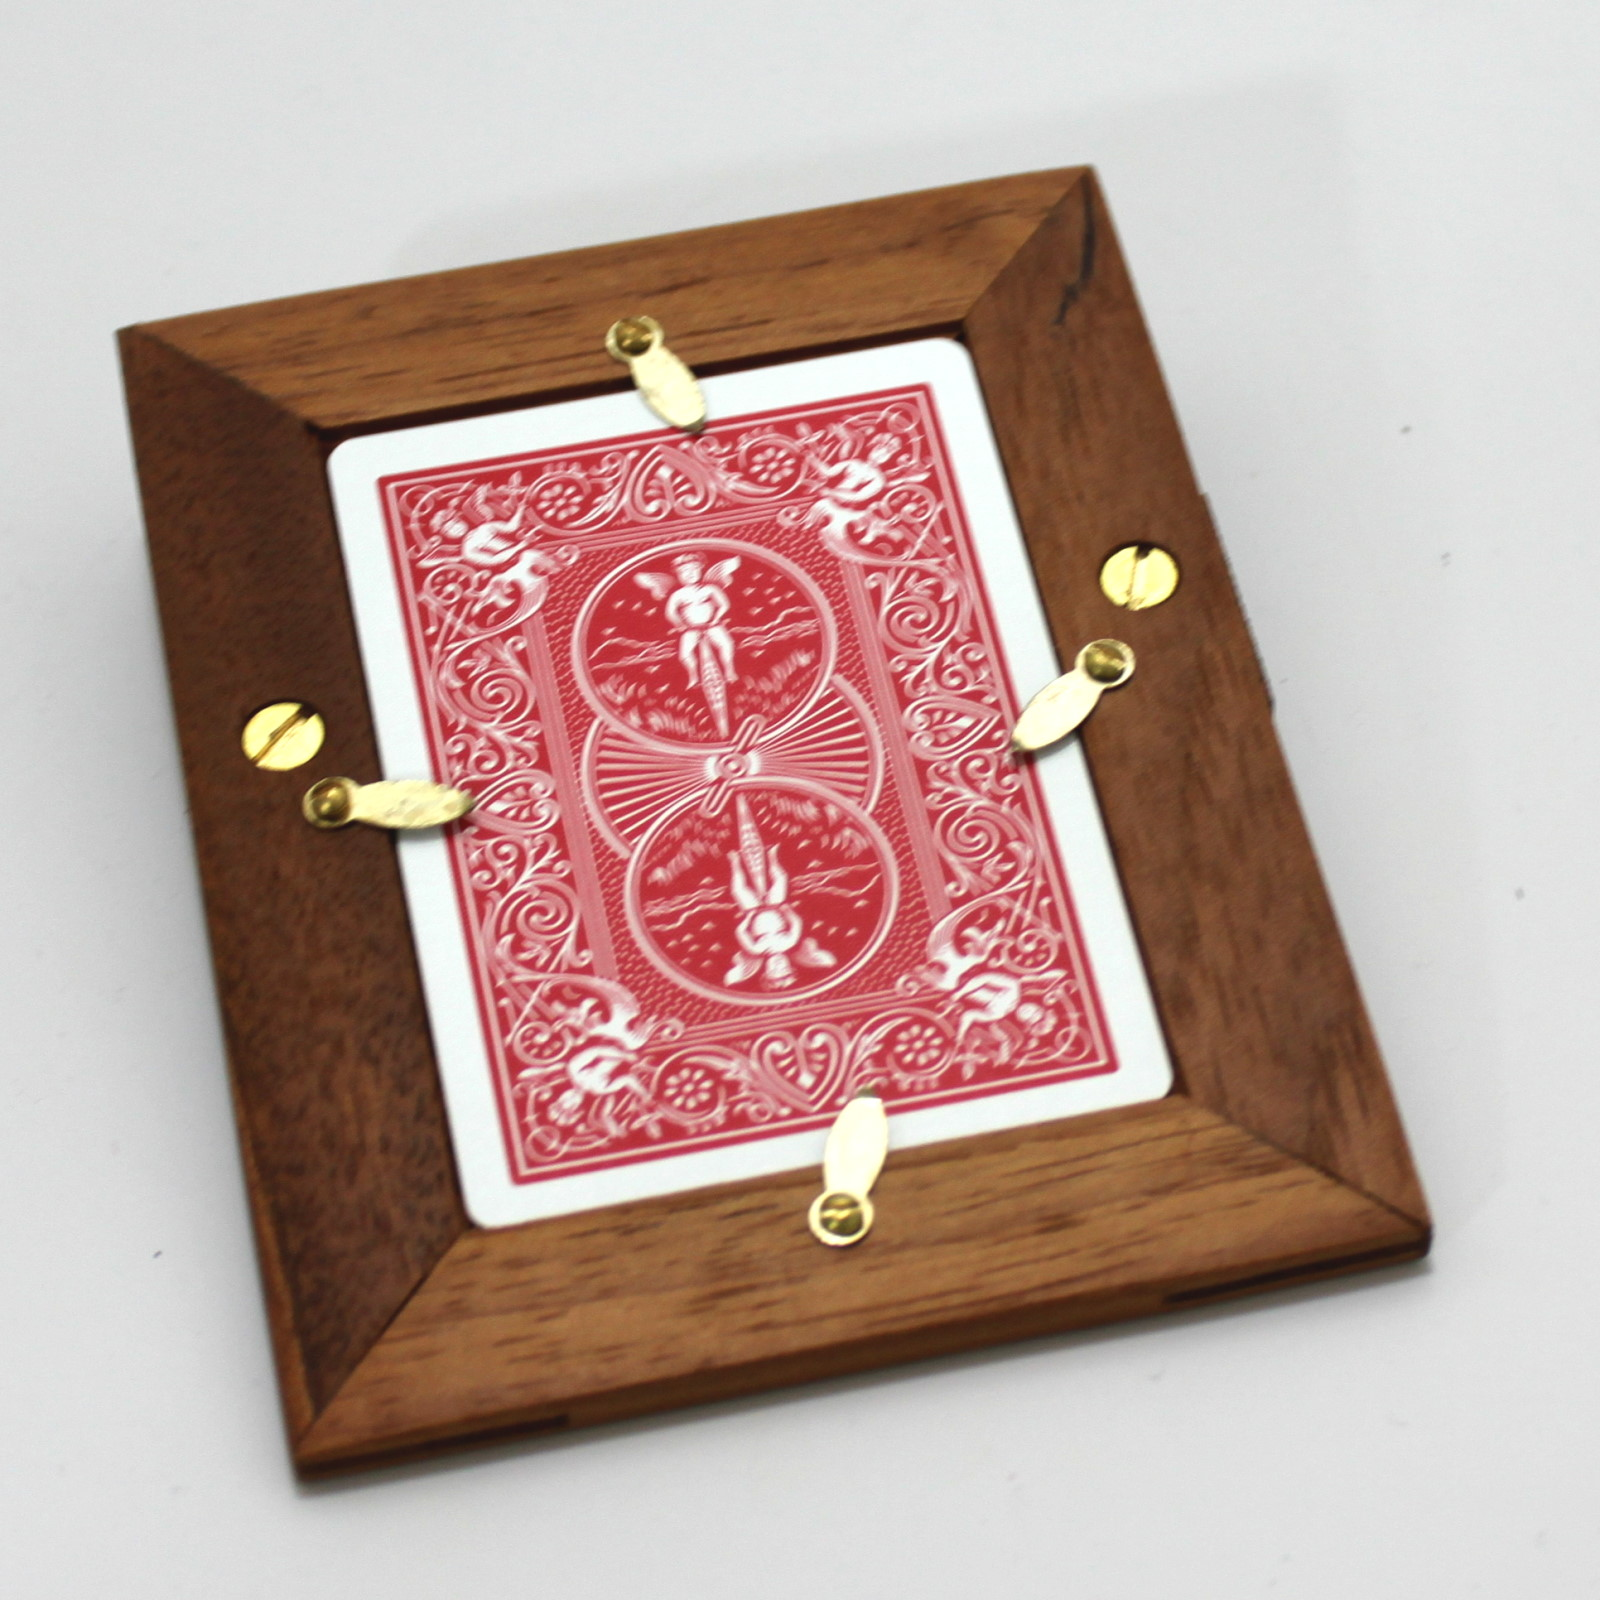 Penetrative Card Frame (Thayer Style) by Unknown